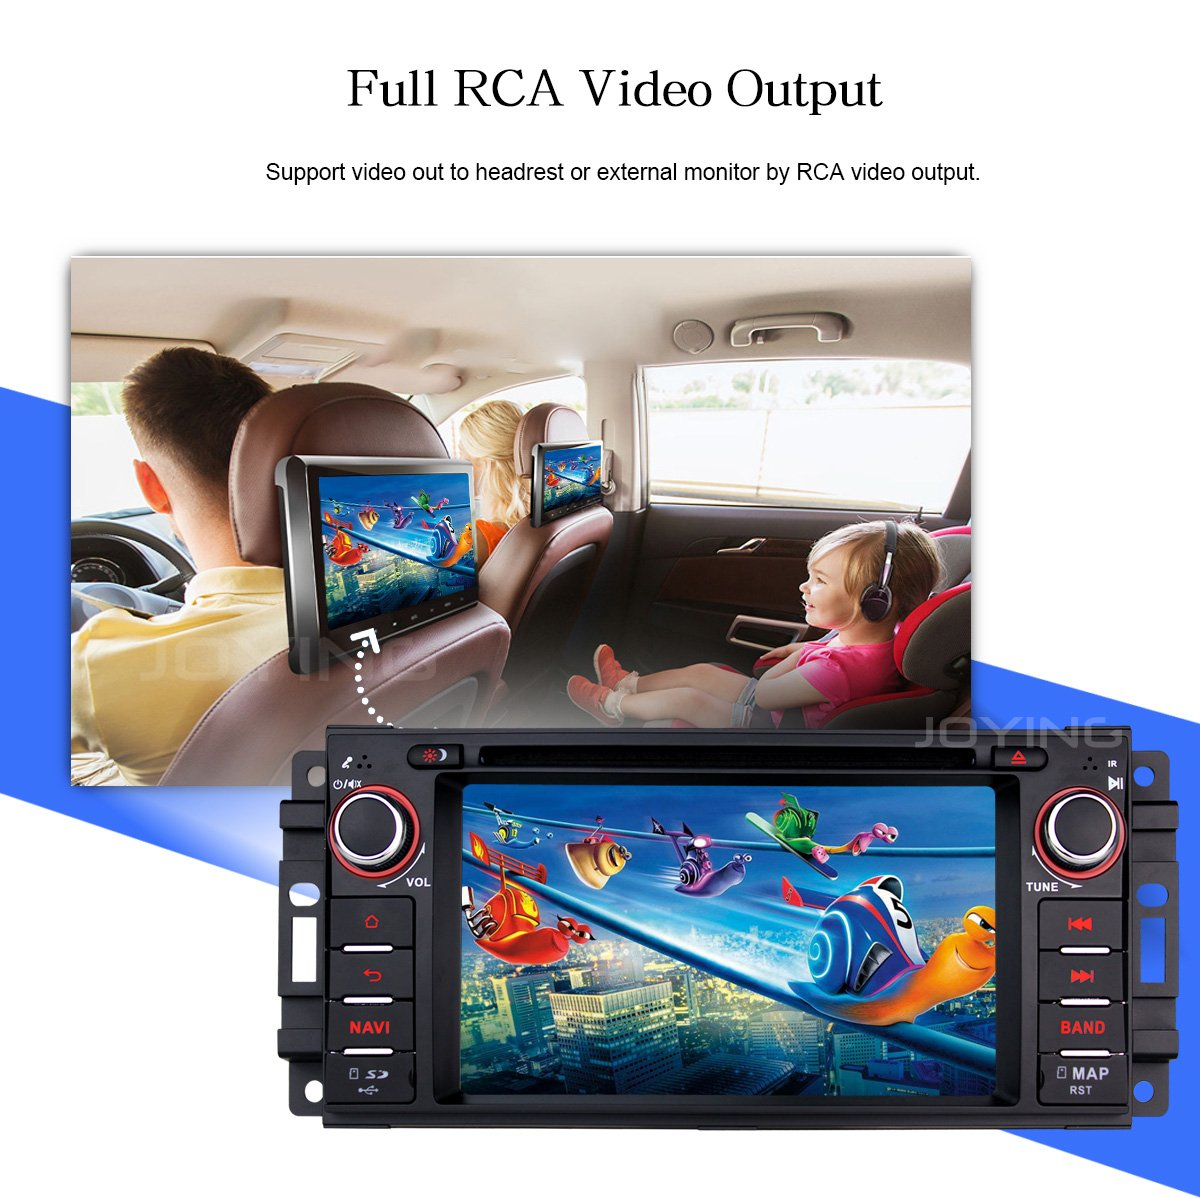 Joying Car Stereo 4gb 64gb Android 80 62 Inch Single Details About Chrysler Dodge Jeep Radio Wiring Harness Headunit Din With Zlink Auto For Video Out Subwoofer